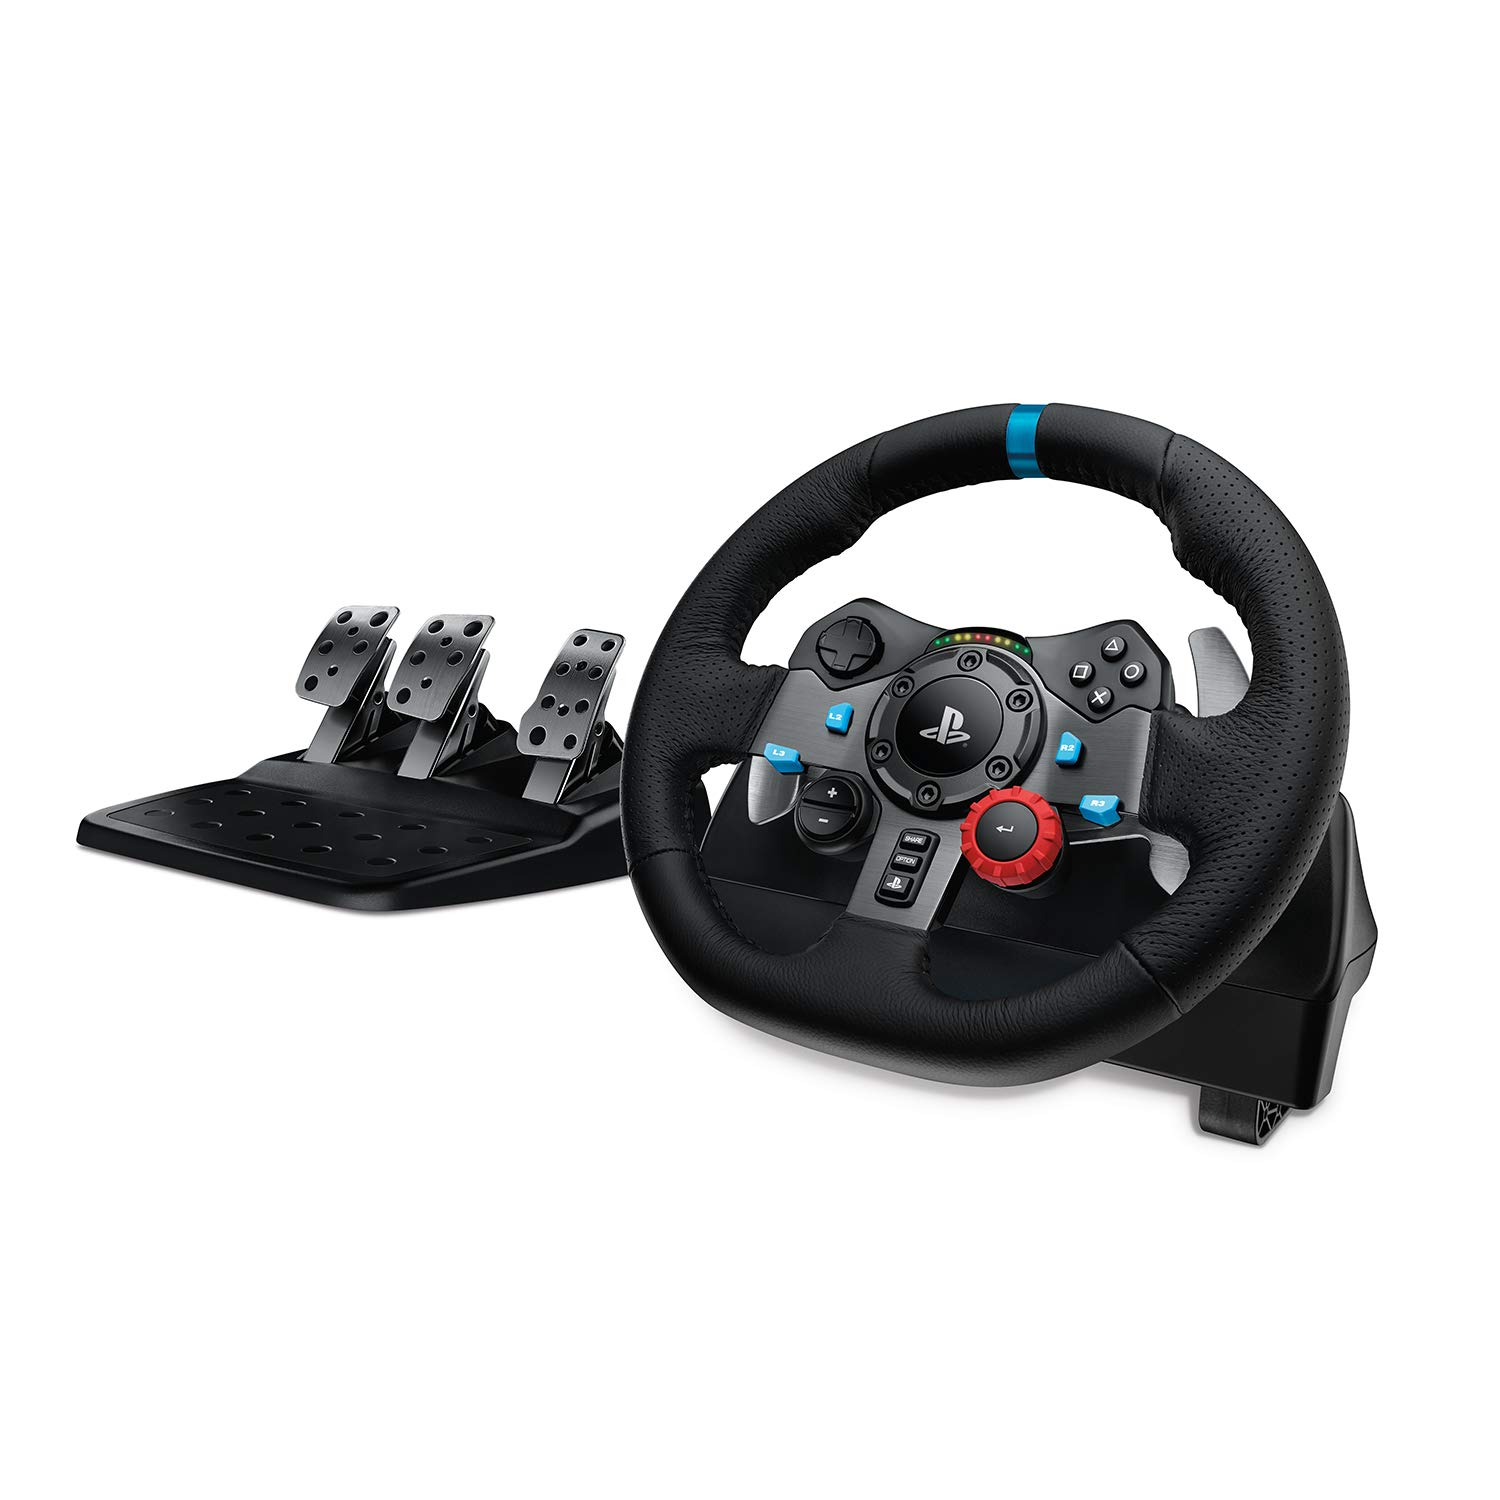 Logitech G29 Driving Force Racing Wheel and Floor Pedals, Real Force Feedback, Stainless Steel Paddle Shifters, Leather Steering Wheel Cover for PS5, PS4, PC, Mac - Black